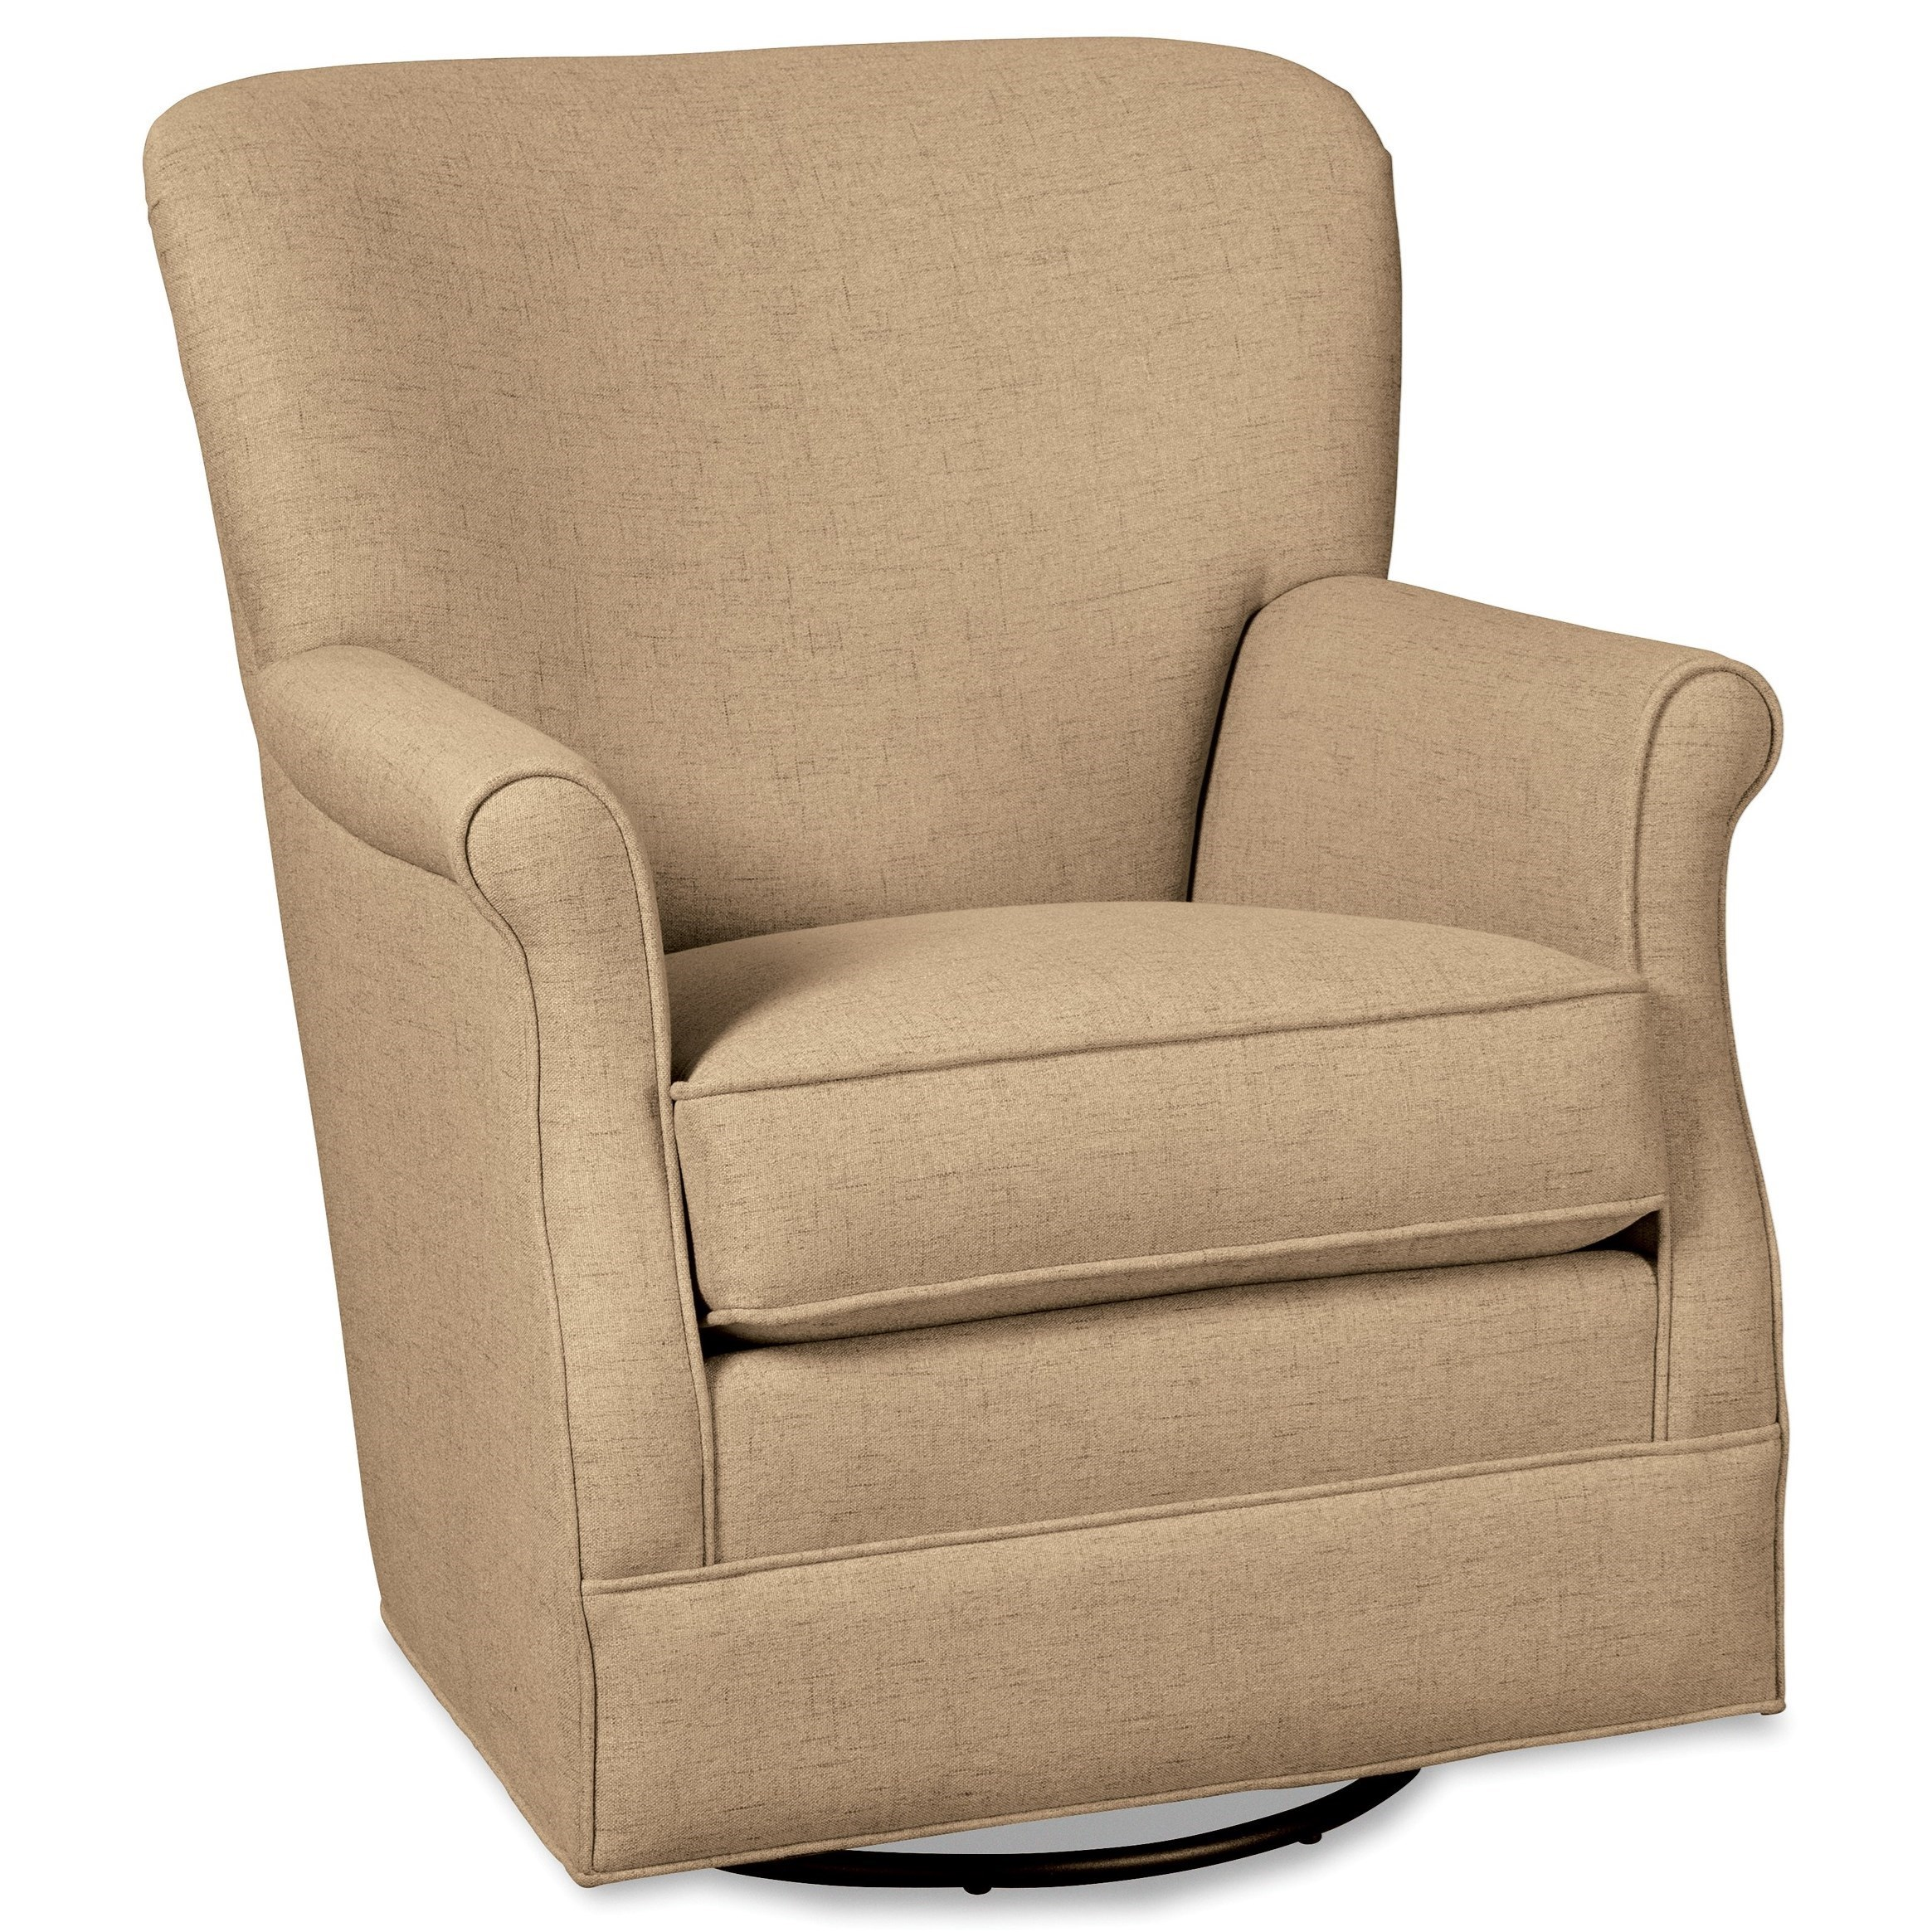 Swivel Glider Chair with Classic Rolled Arms